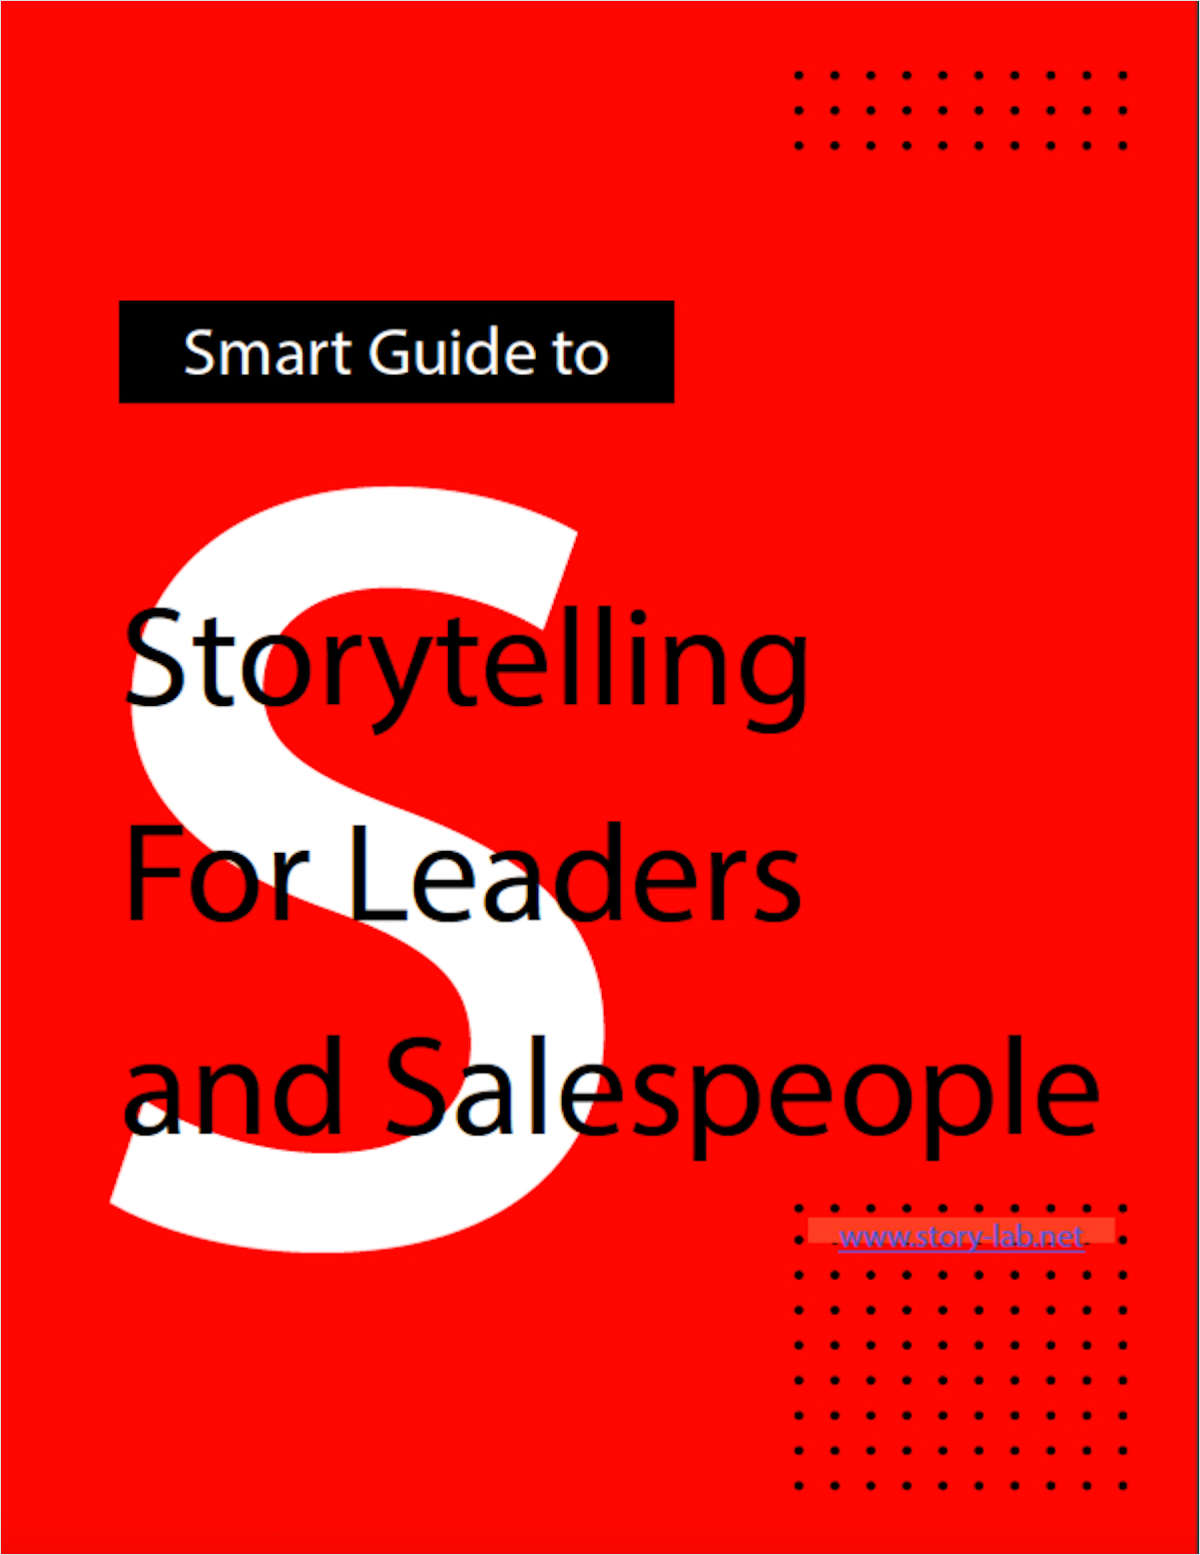 Smart Guide: Storytelling For Leaders and Salespeople